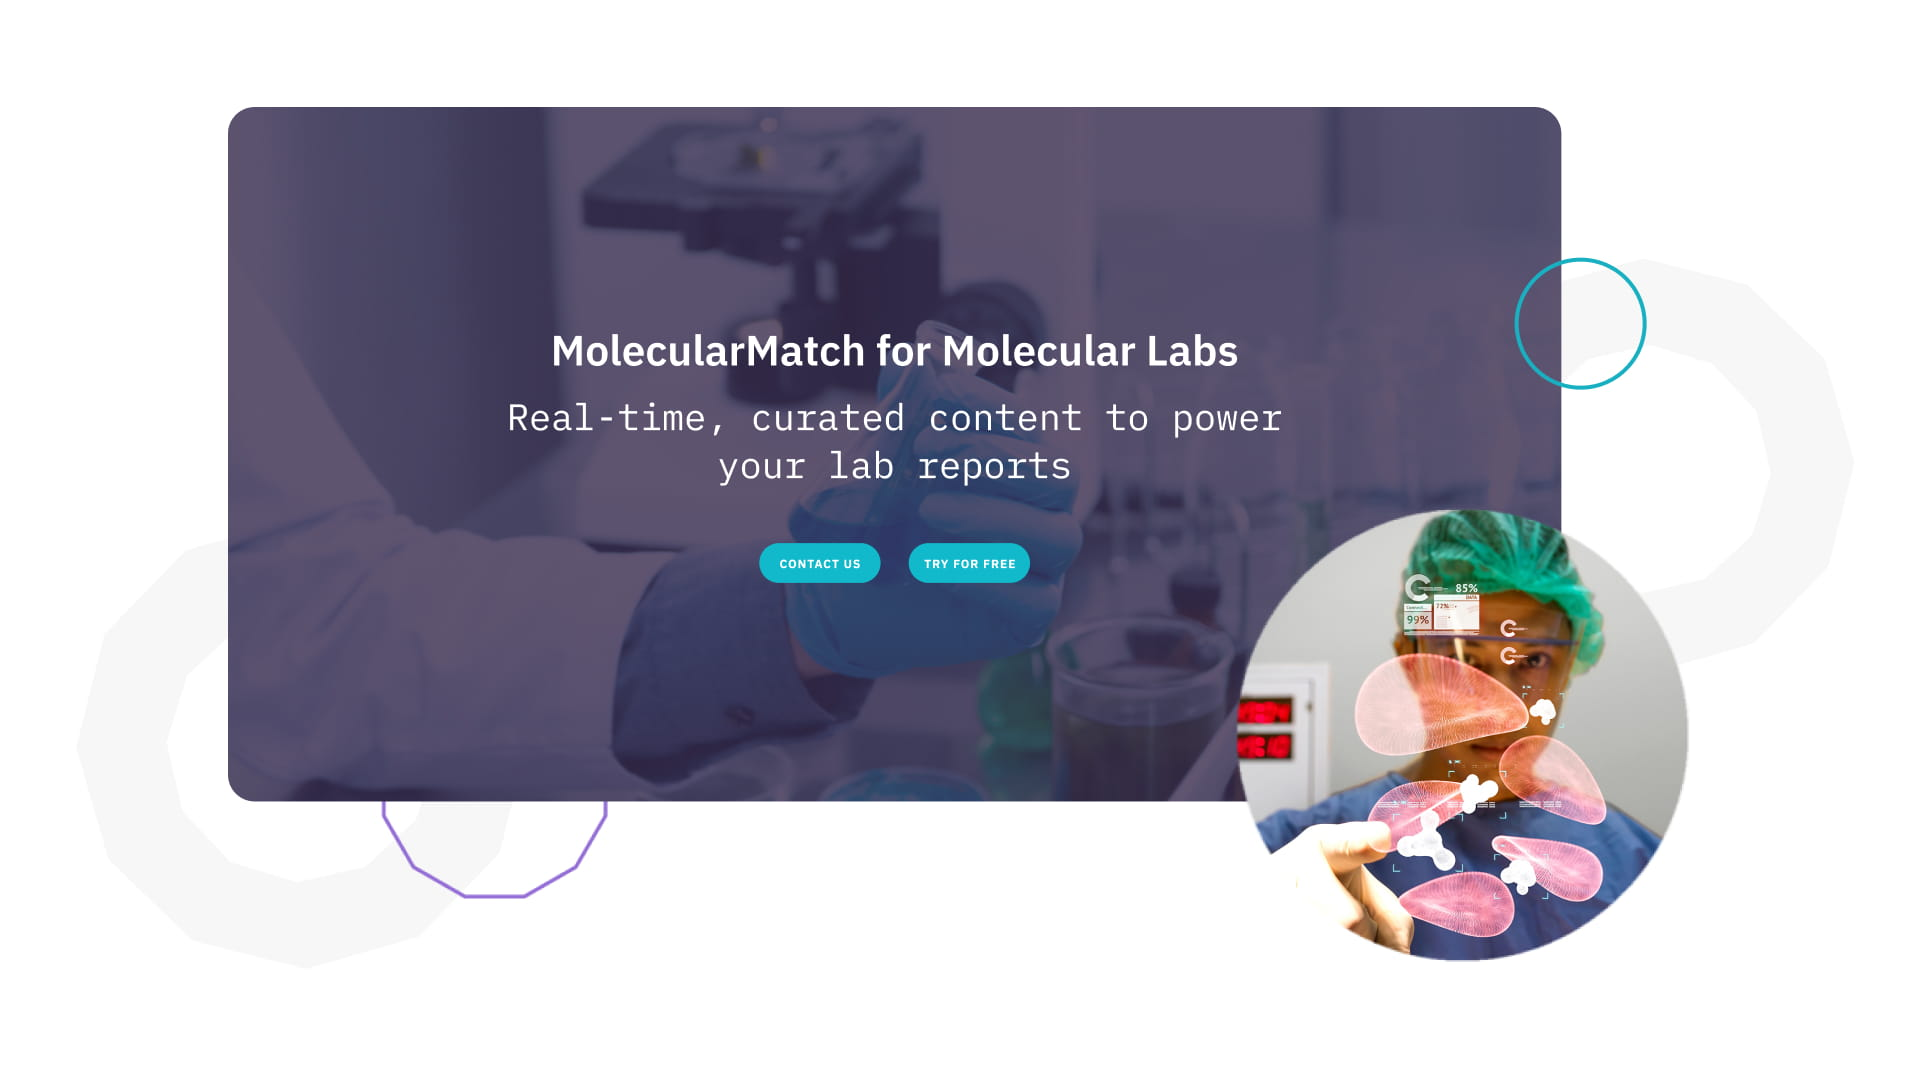 studio-malagon-molecular-match-brand-collage-02